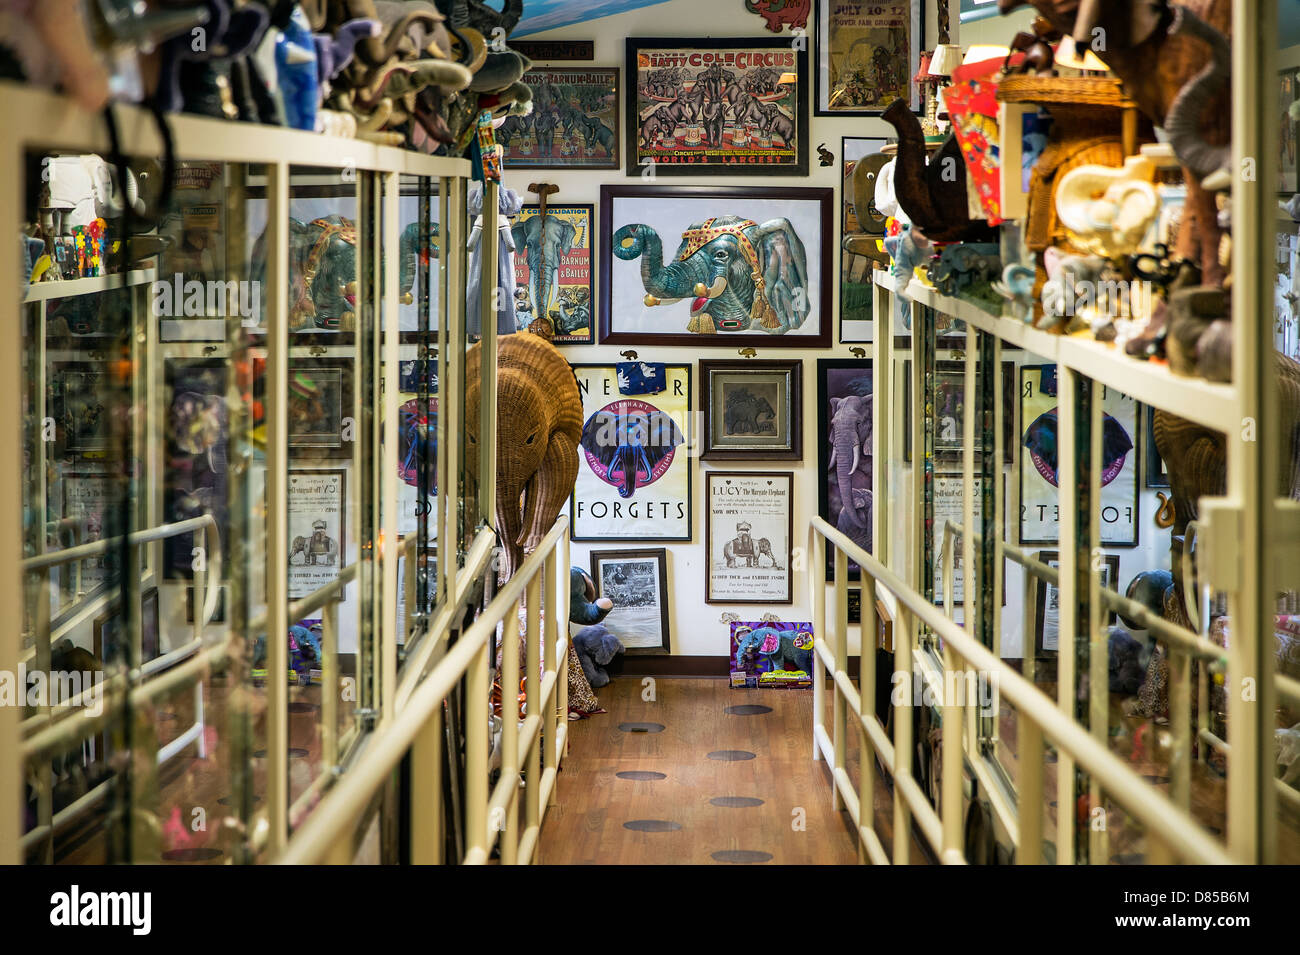 Mister Ed's Elephant Museum and candy shop, Orrtanna, Pennsylvania, USA - Stock Image